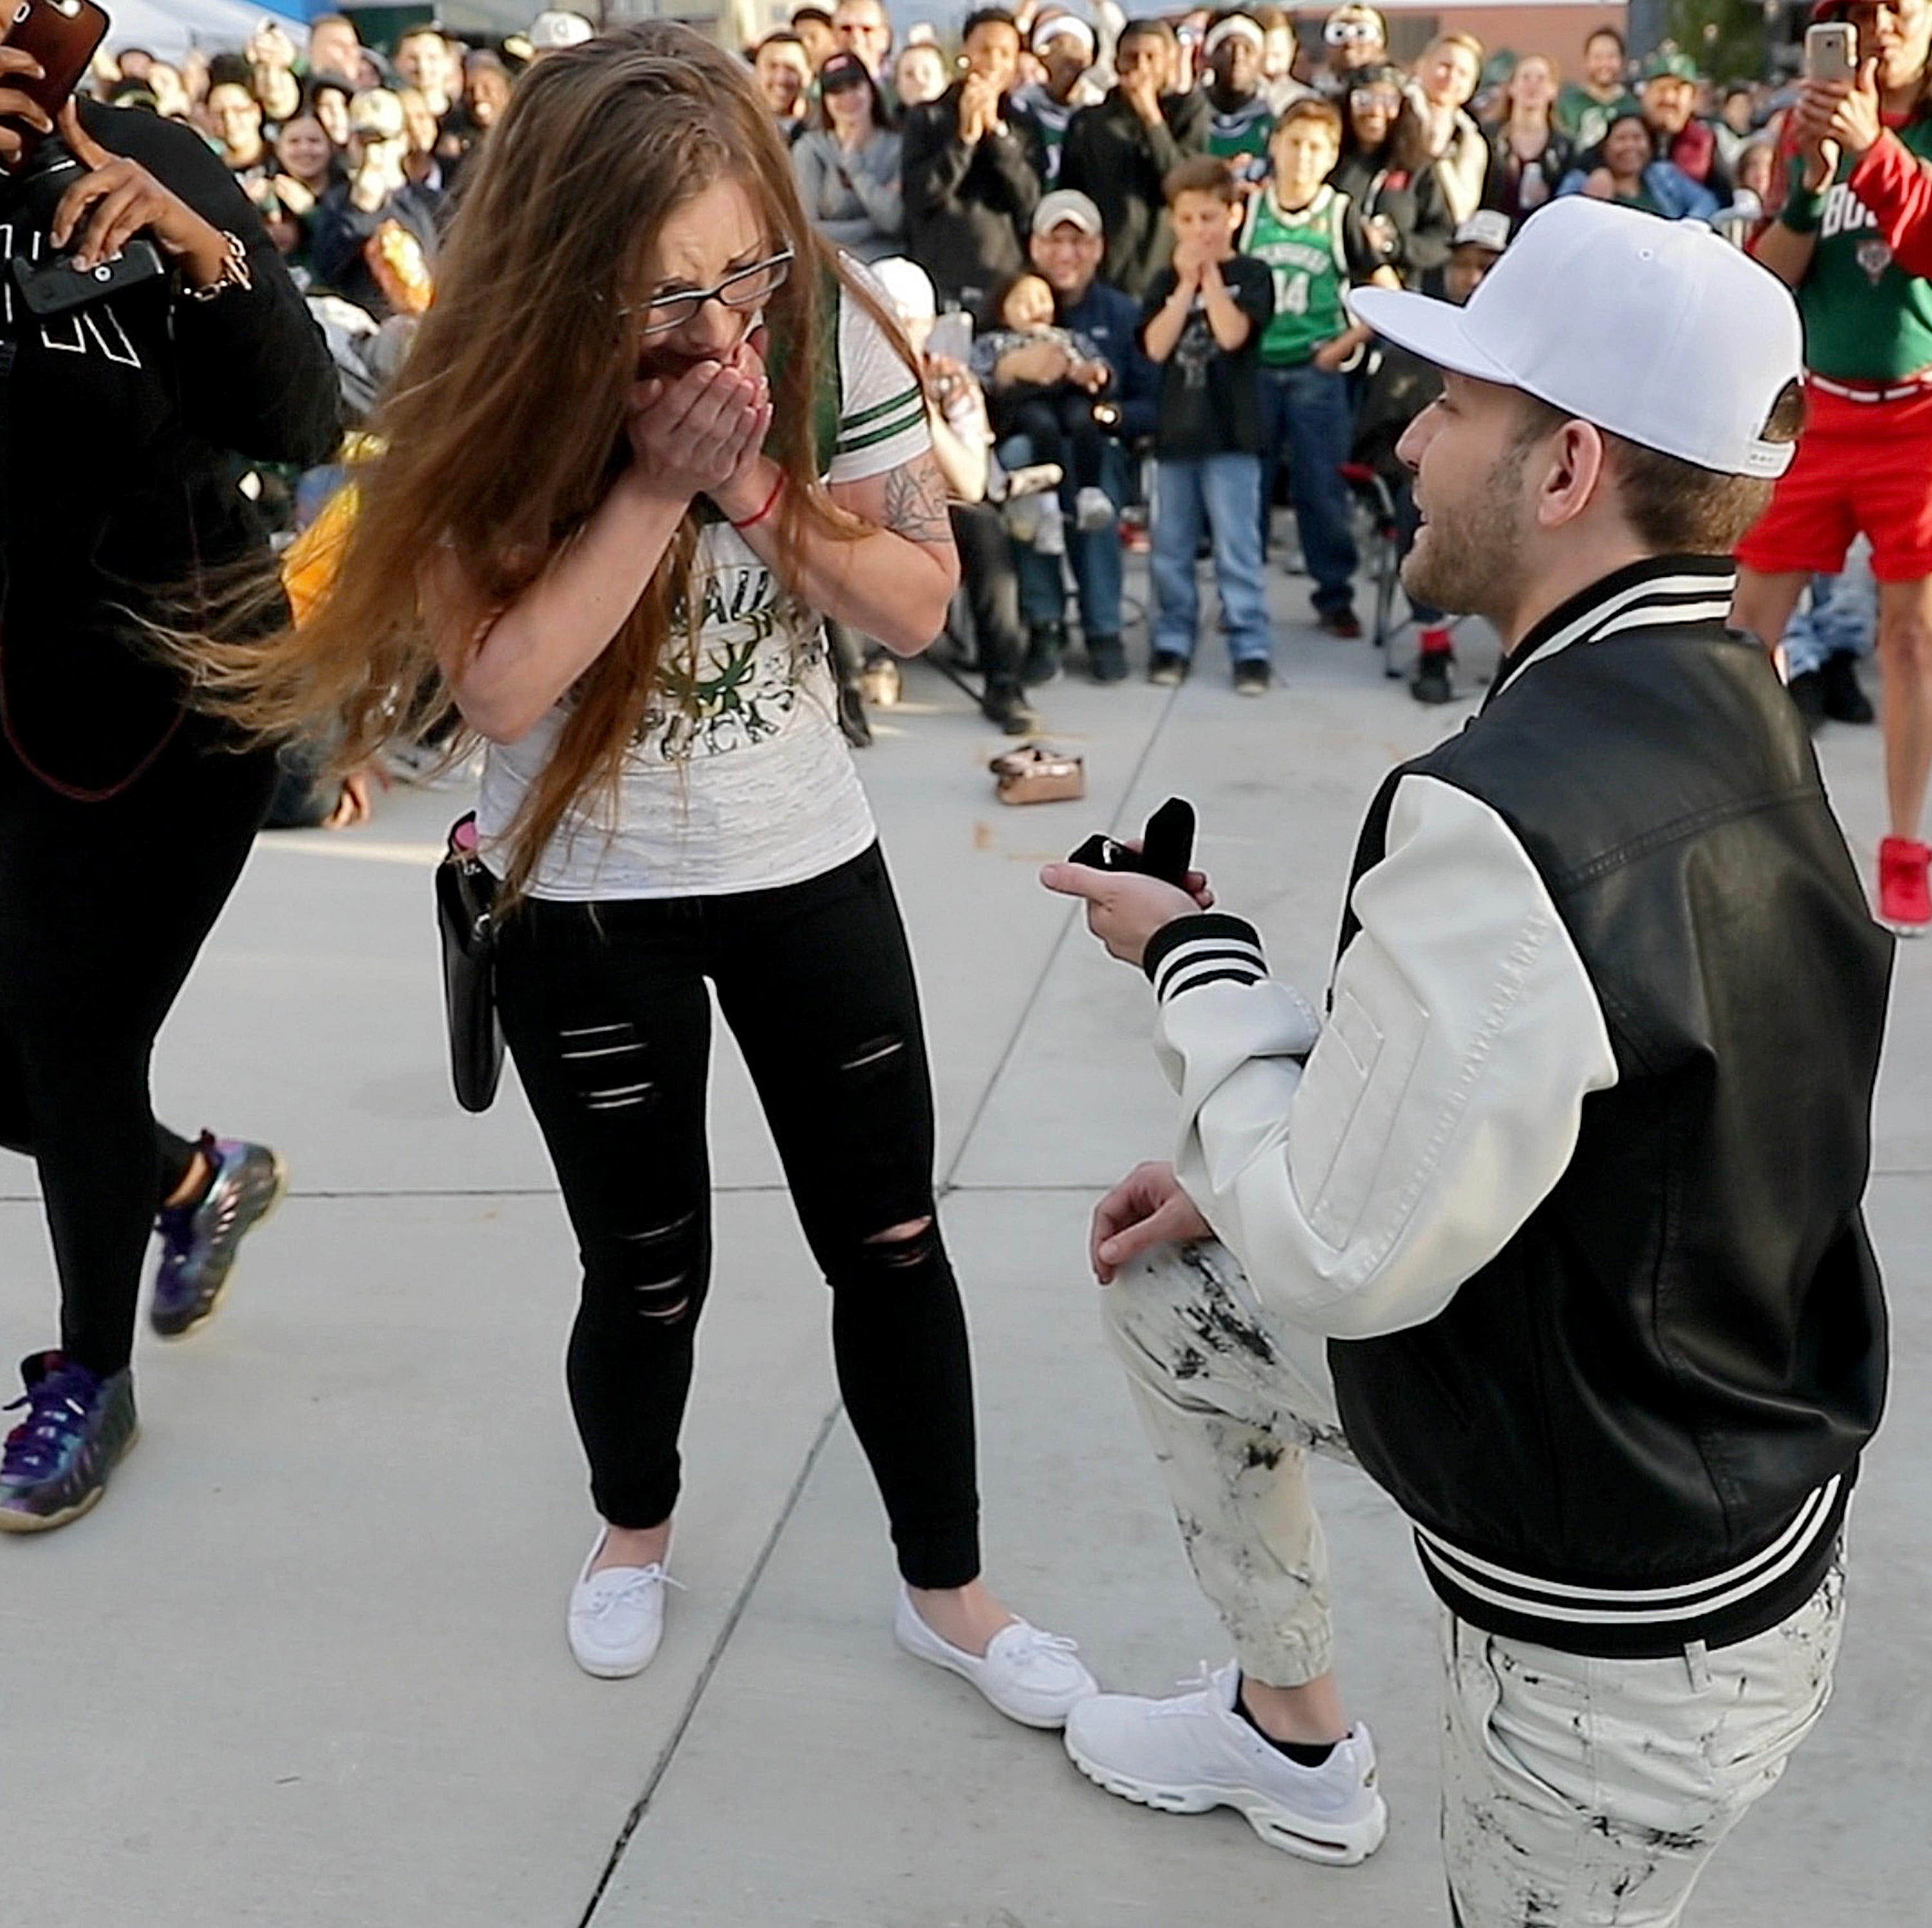 These two Bucks fans shared their proposal with thousands at a Fiserv Forum plaza playoffs watch party